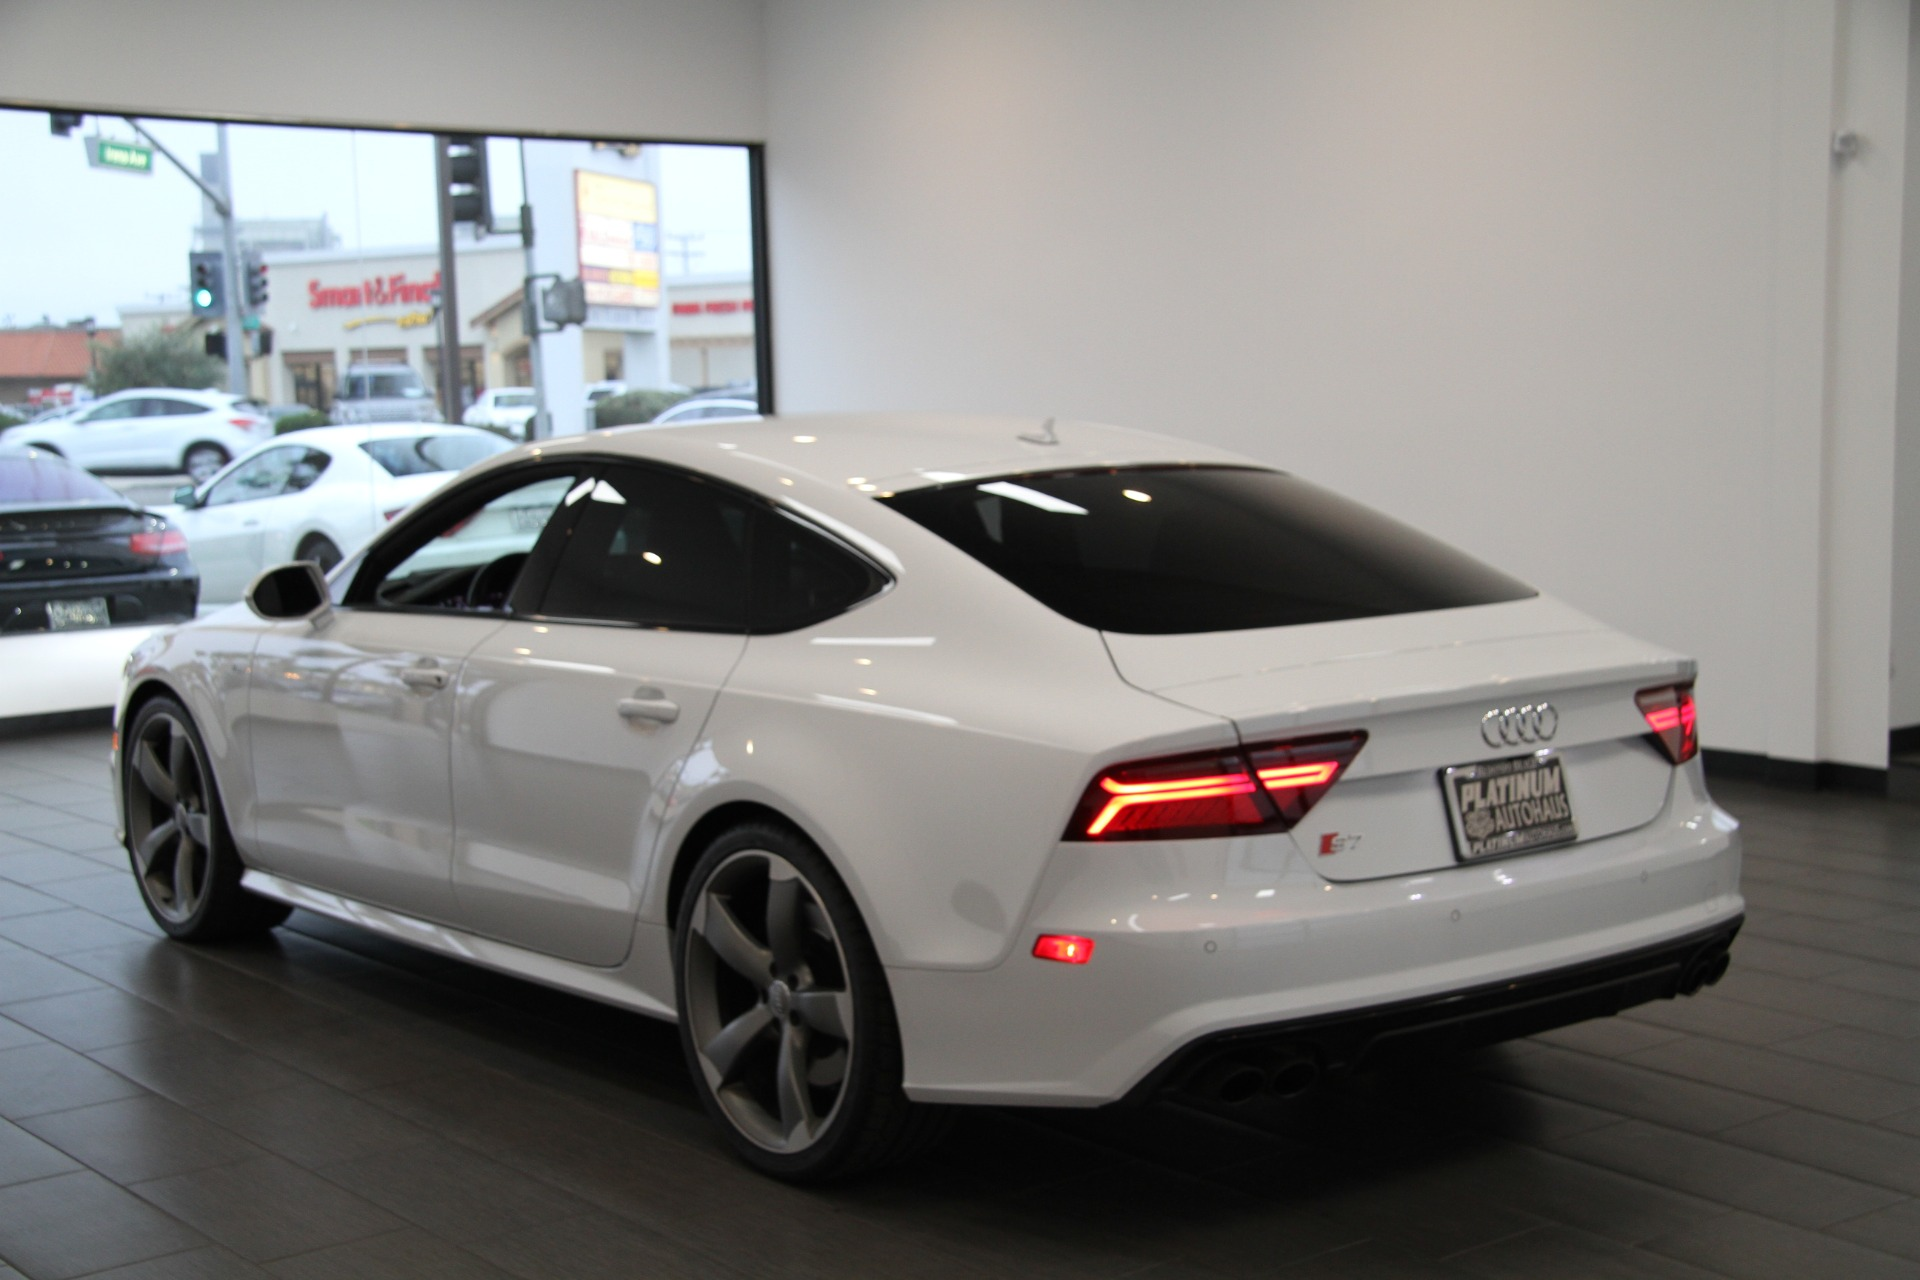 Audi Dealership Near Me >> 2016 Audi S7 4.0T quattro ** Prestige ** Stock # 6101 for sale near Redondo Beach, CA | CA Audi ...